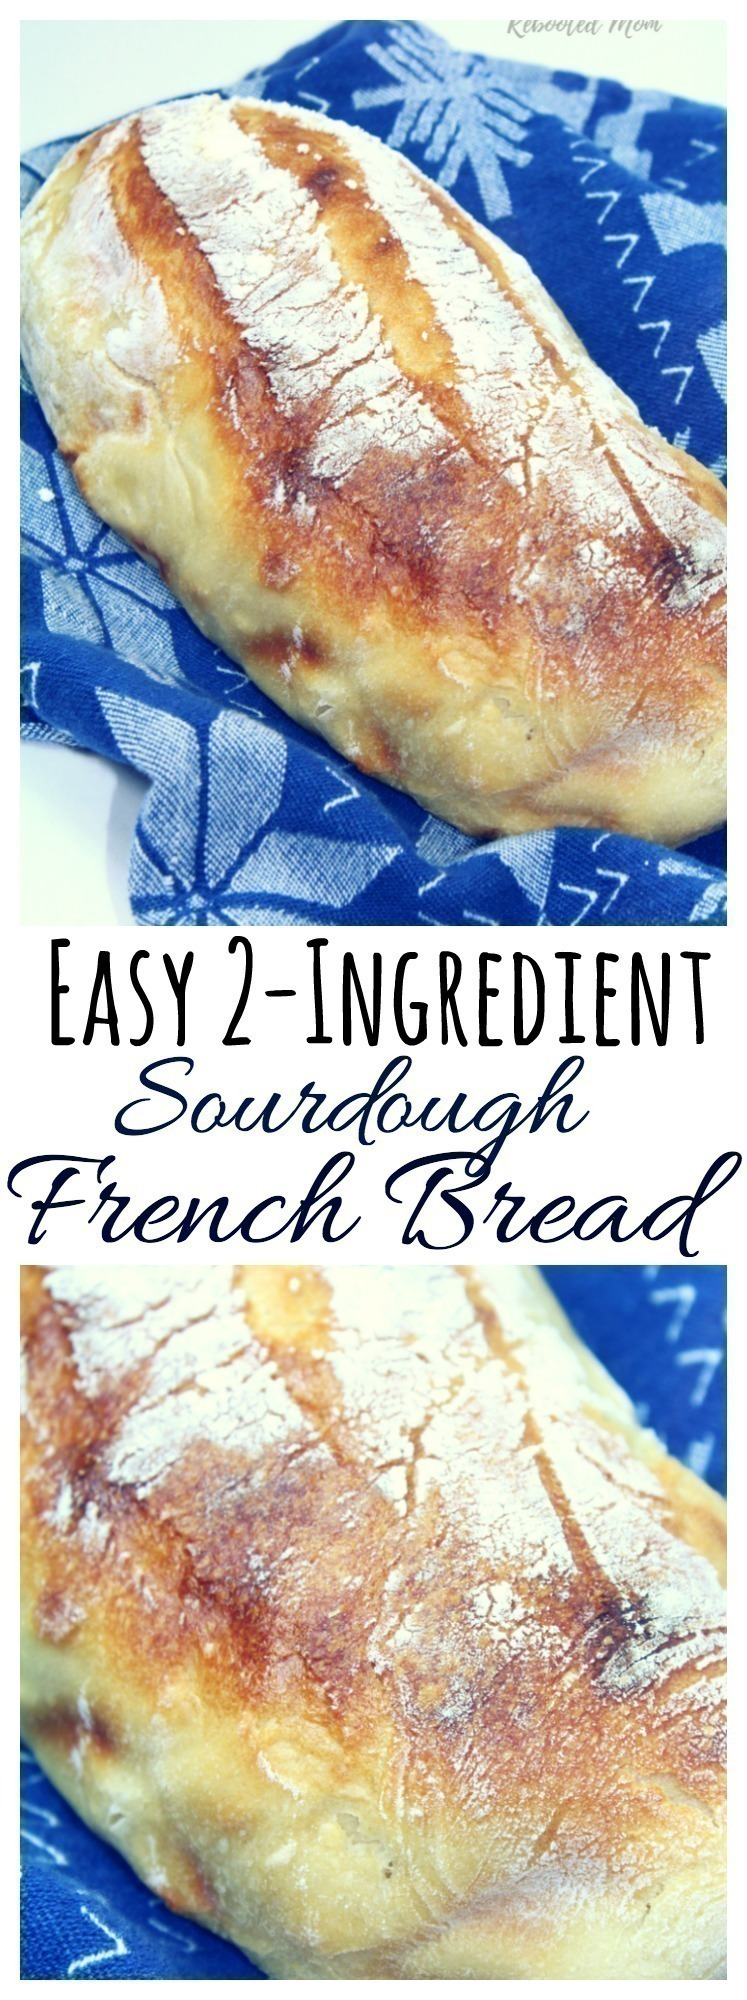 A beautiful loaf of gluten-free sourdough french bread bakes up with just 2 simple ingredients!